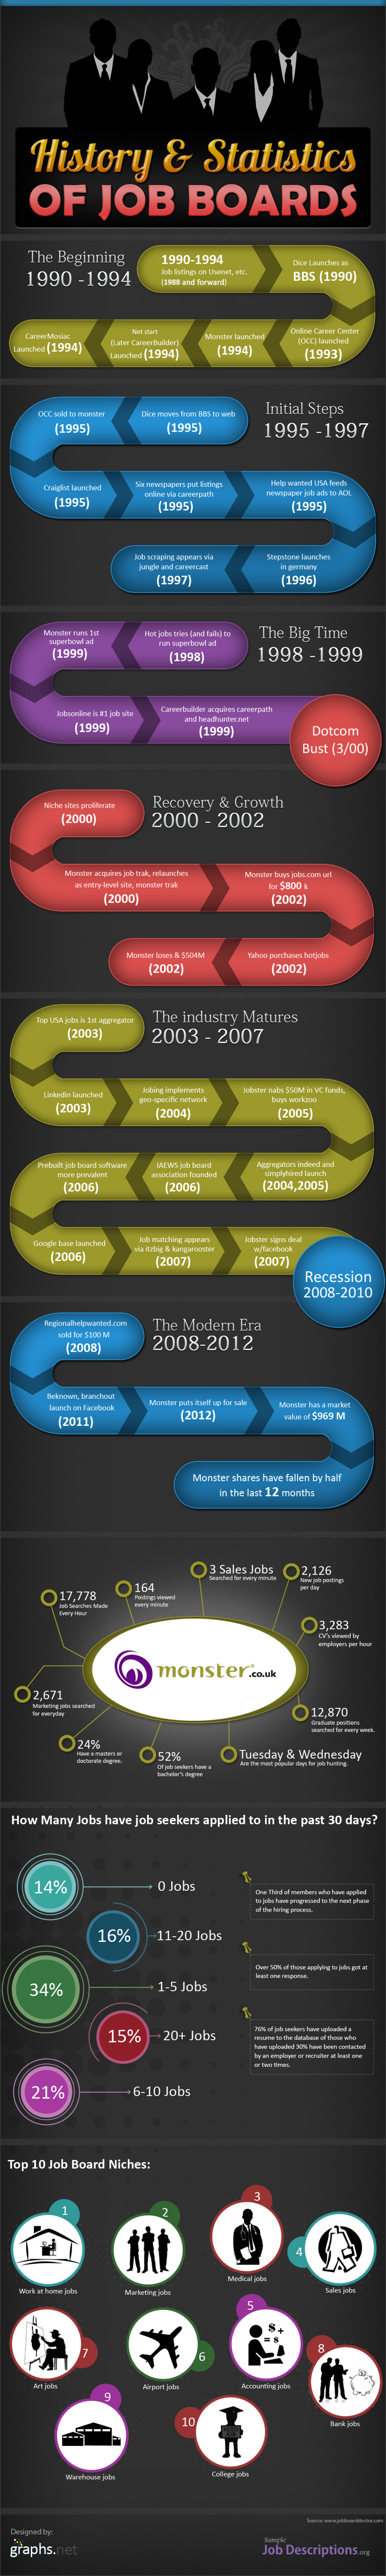 History and Statistics of Job Boards Infographic